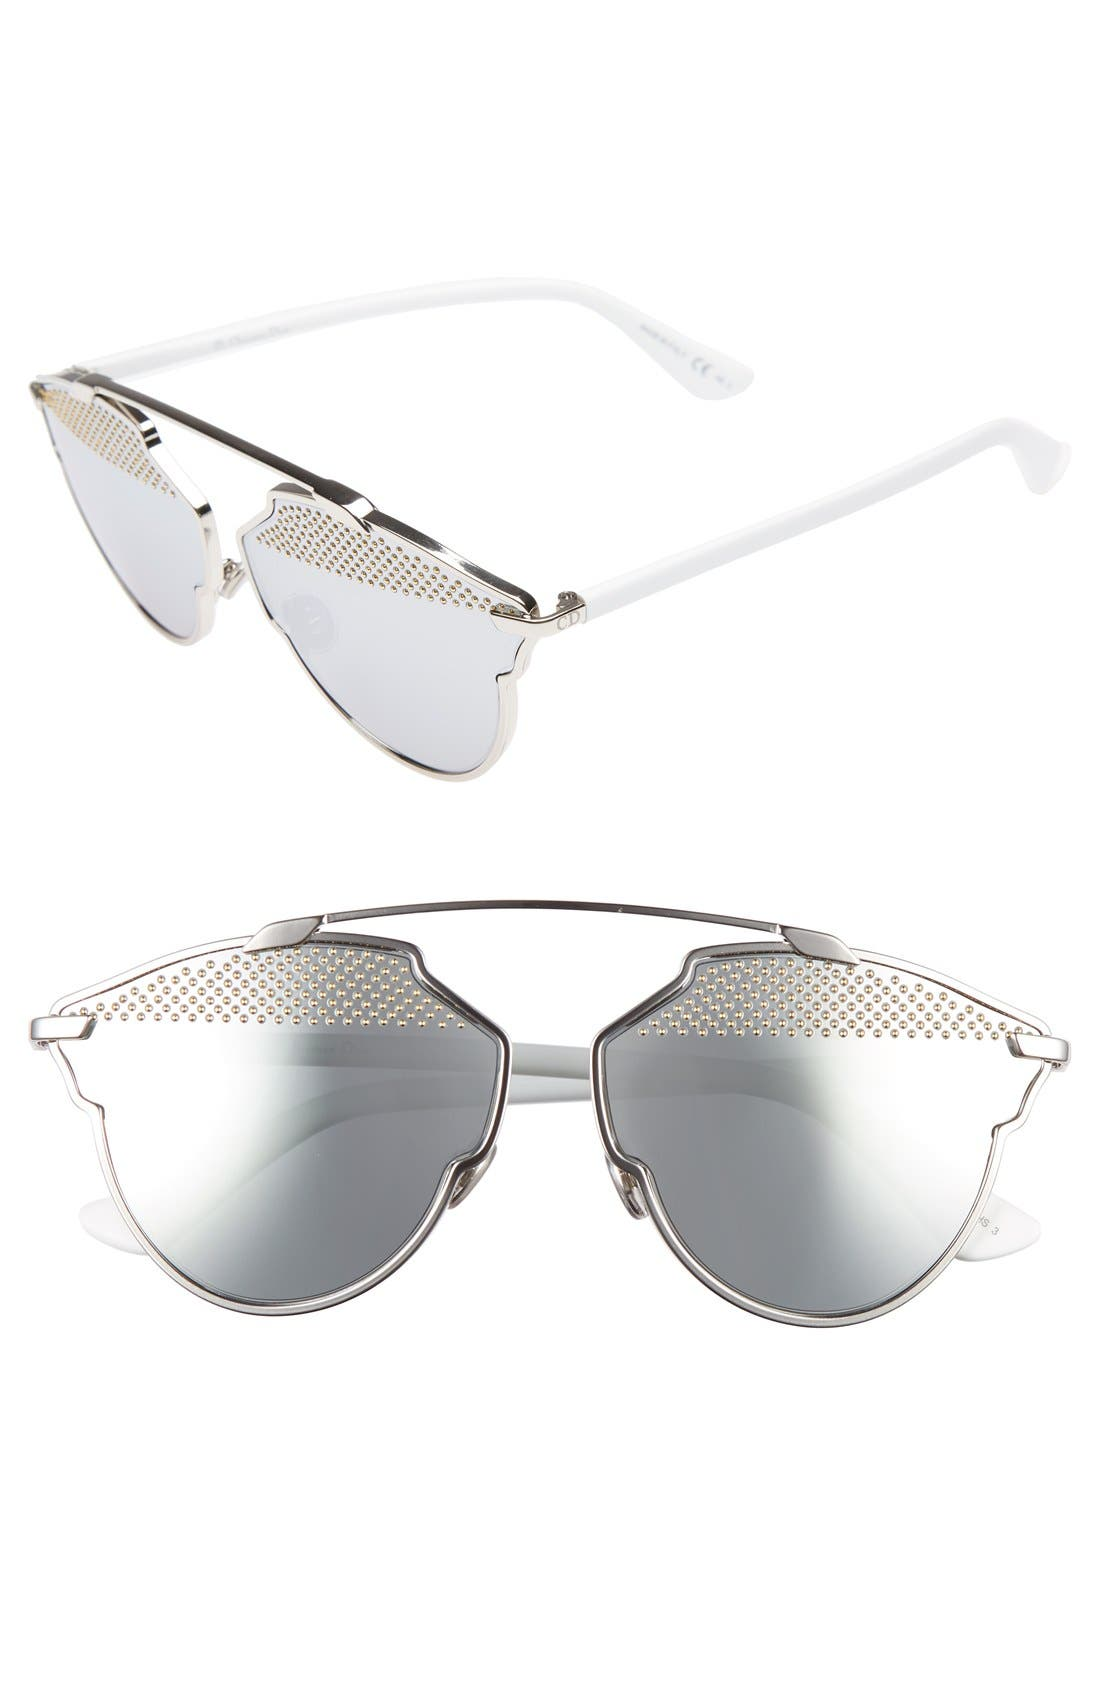 Dior So Real Studded 59mm Brow Bar Sunglasses